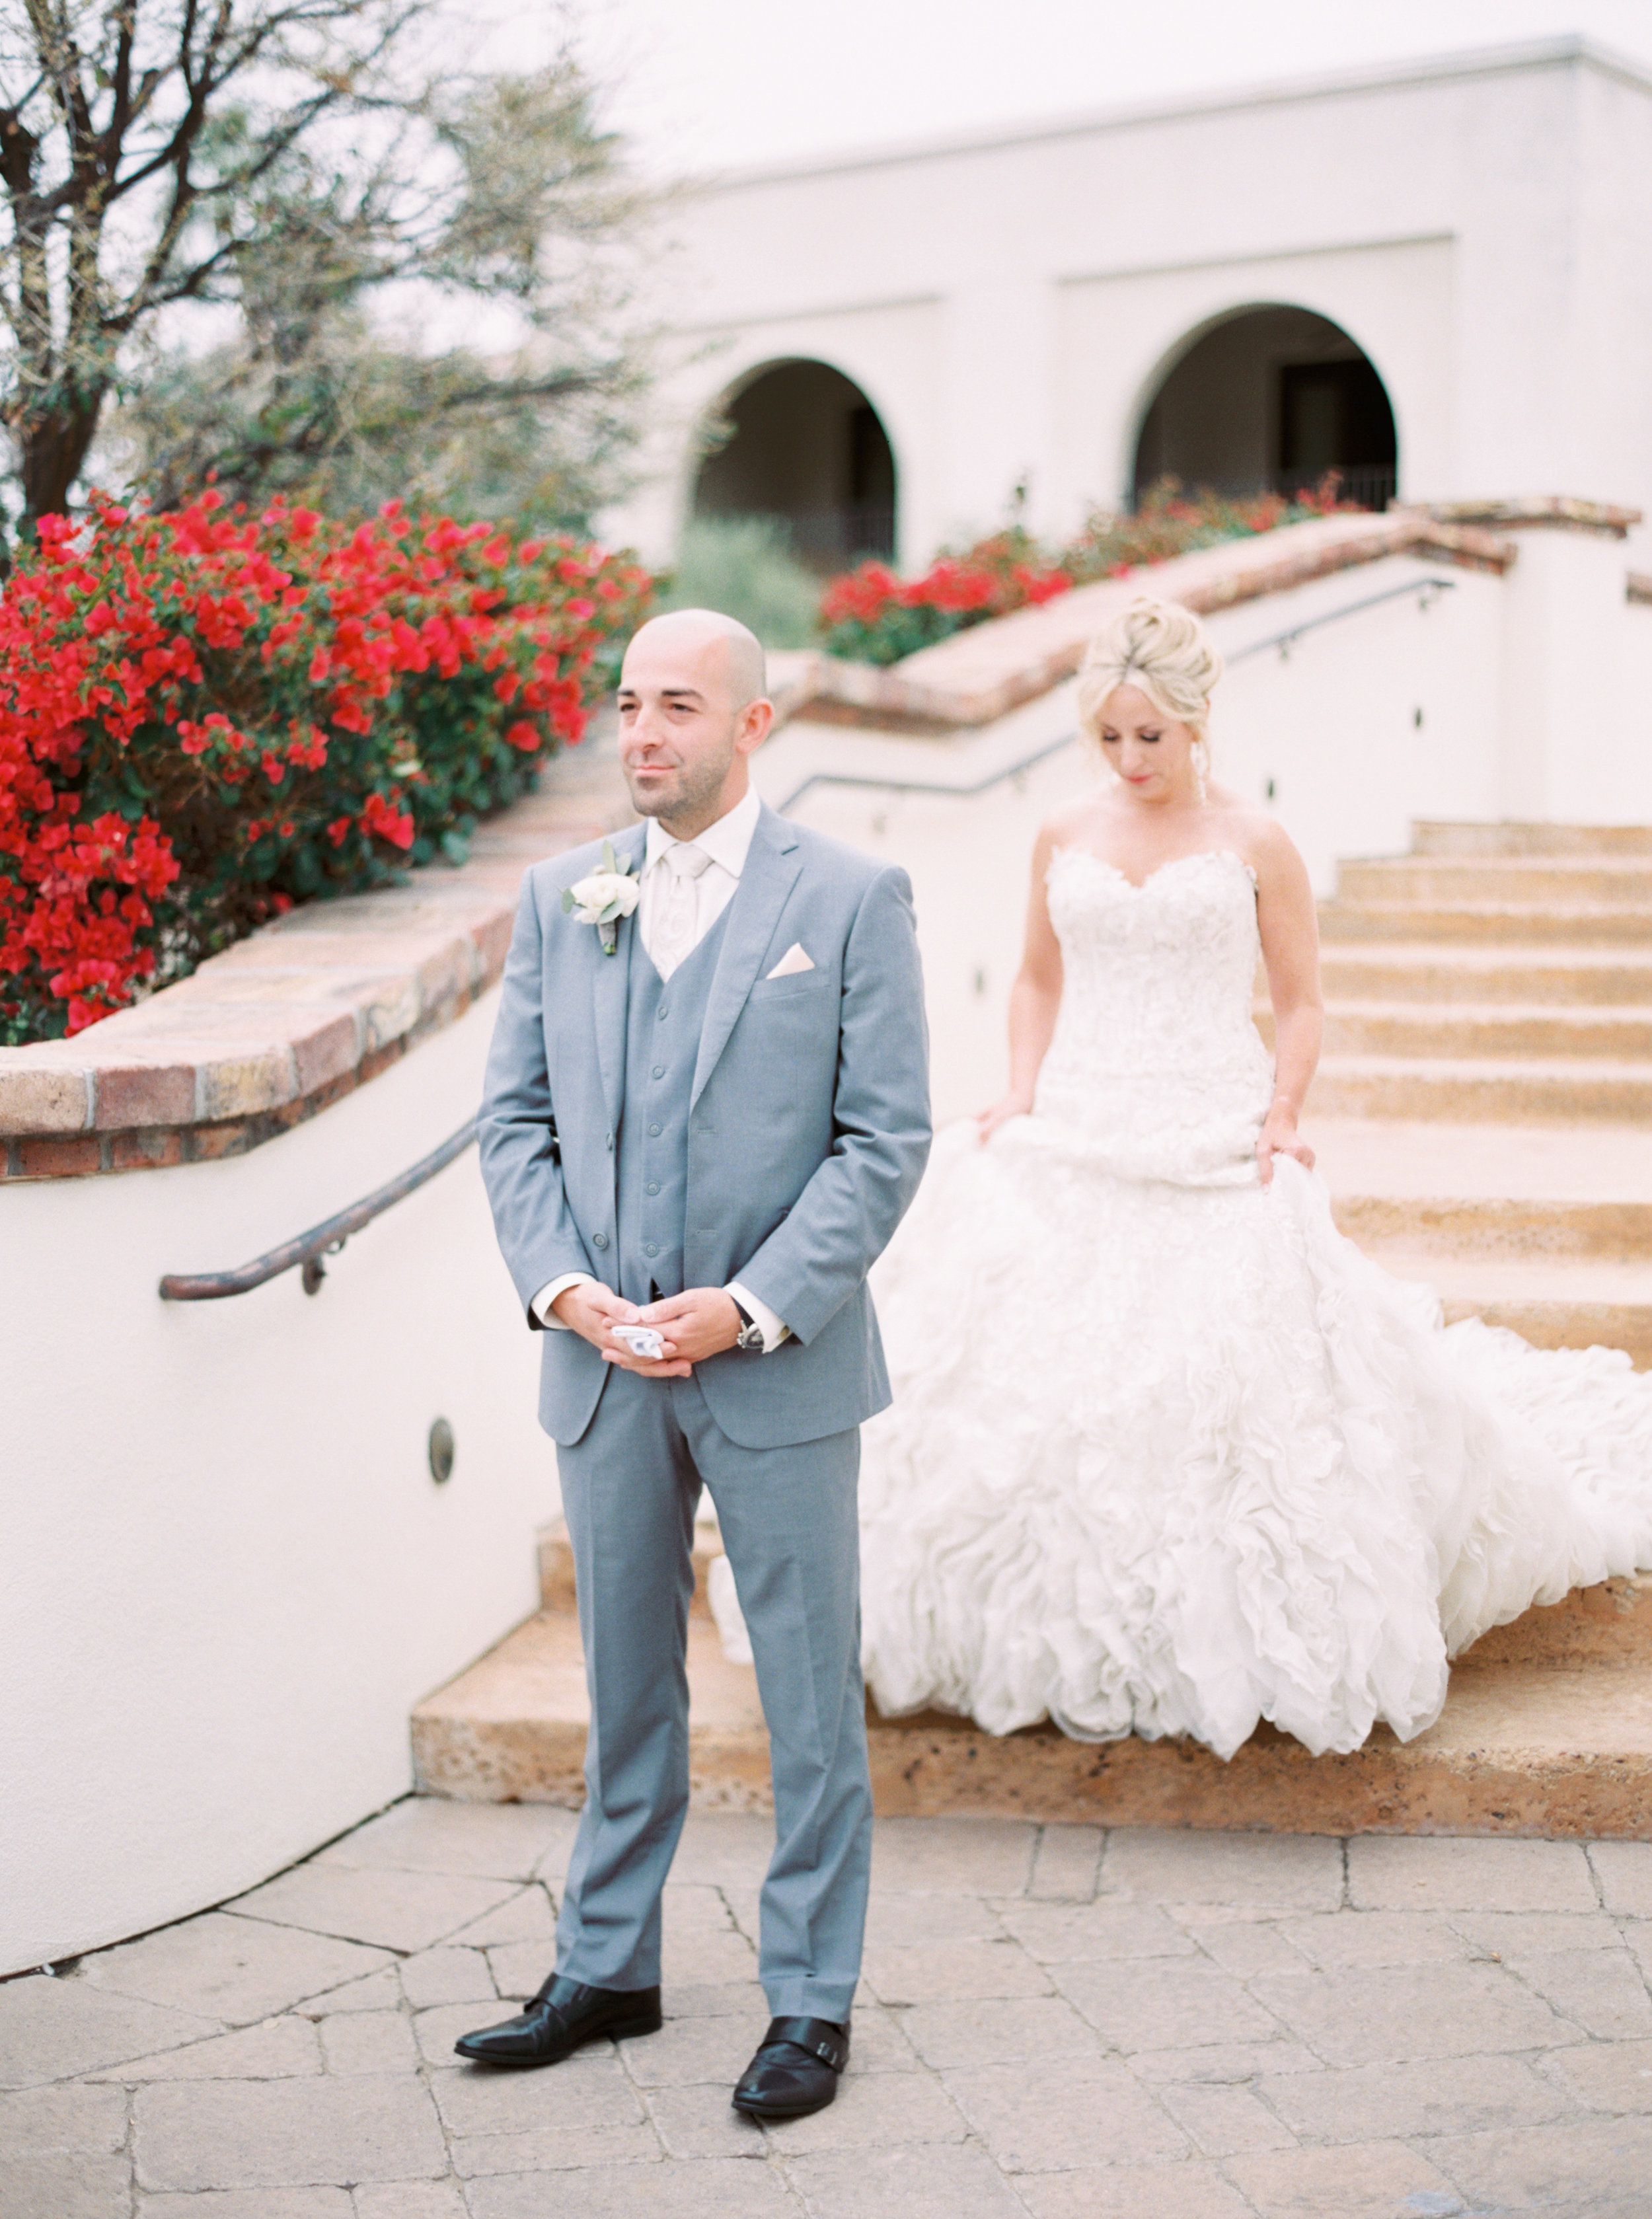 13 first look bride and groom photos before ceremony surprise anticipation groom nervous groom Life Design Events photos by Melissa Jill Photography.jpg